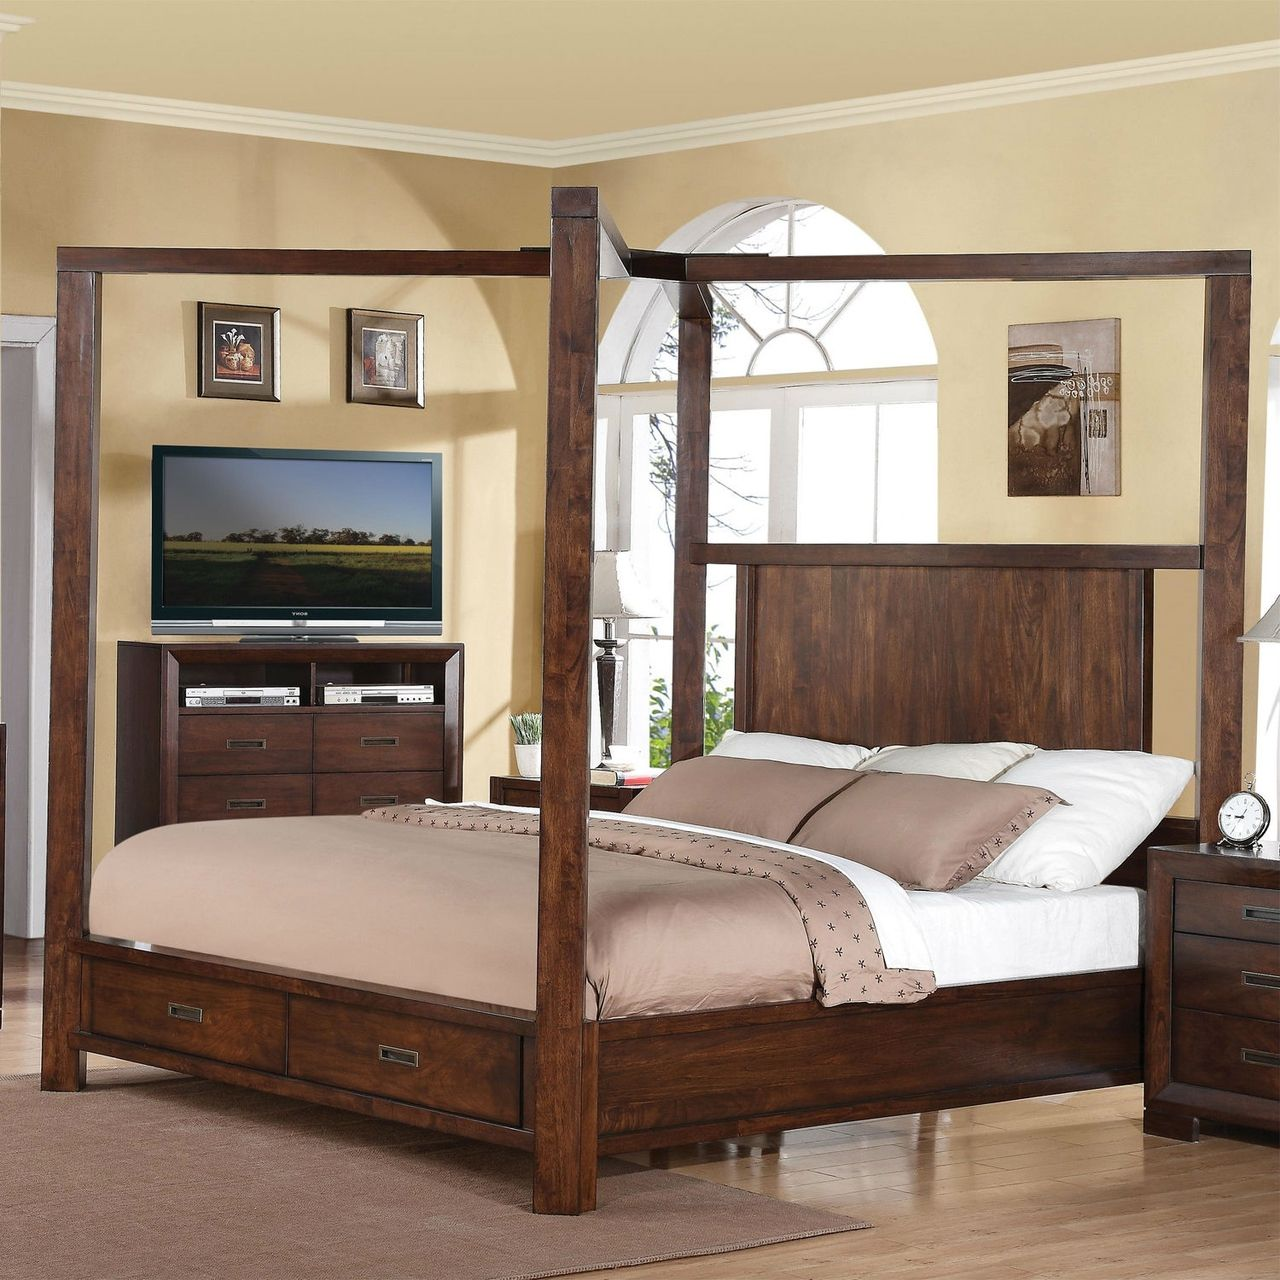 Contemporary Queen size Wood Canopy Bed with Storage